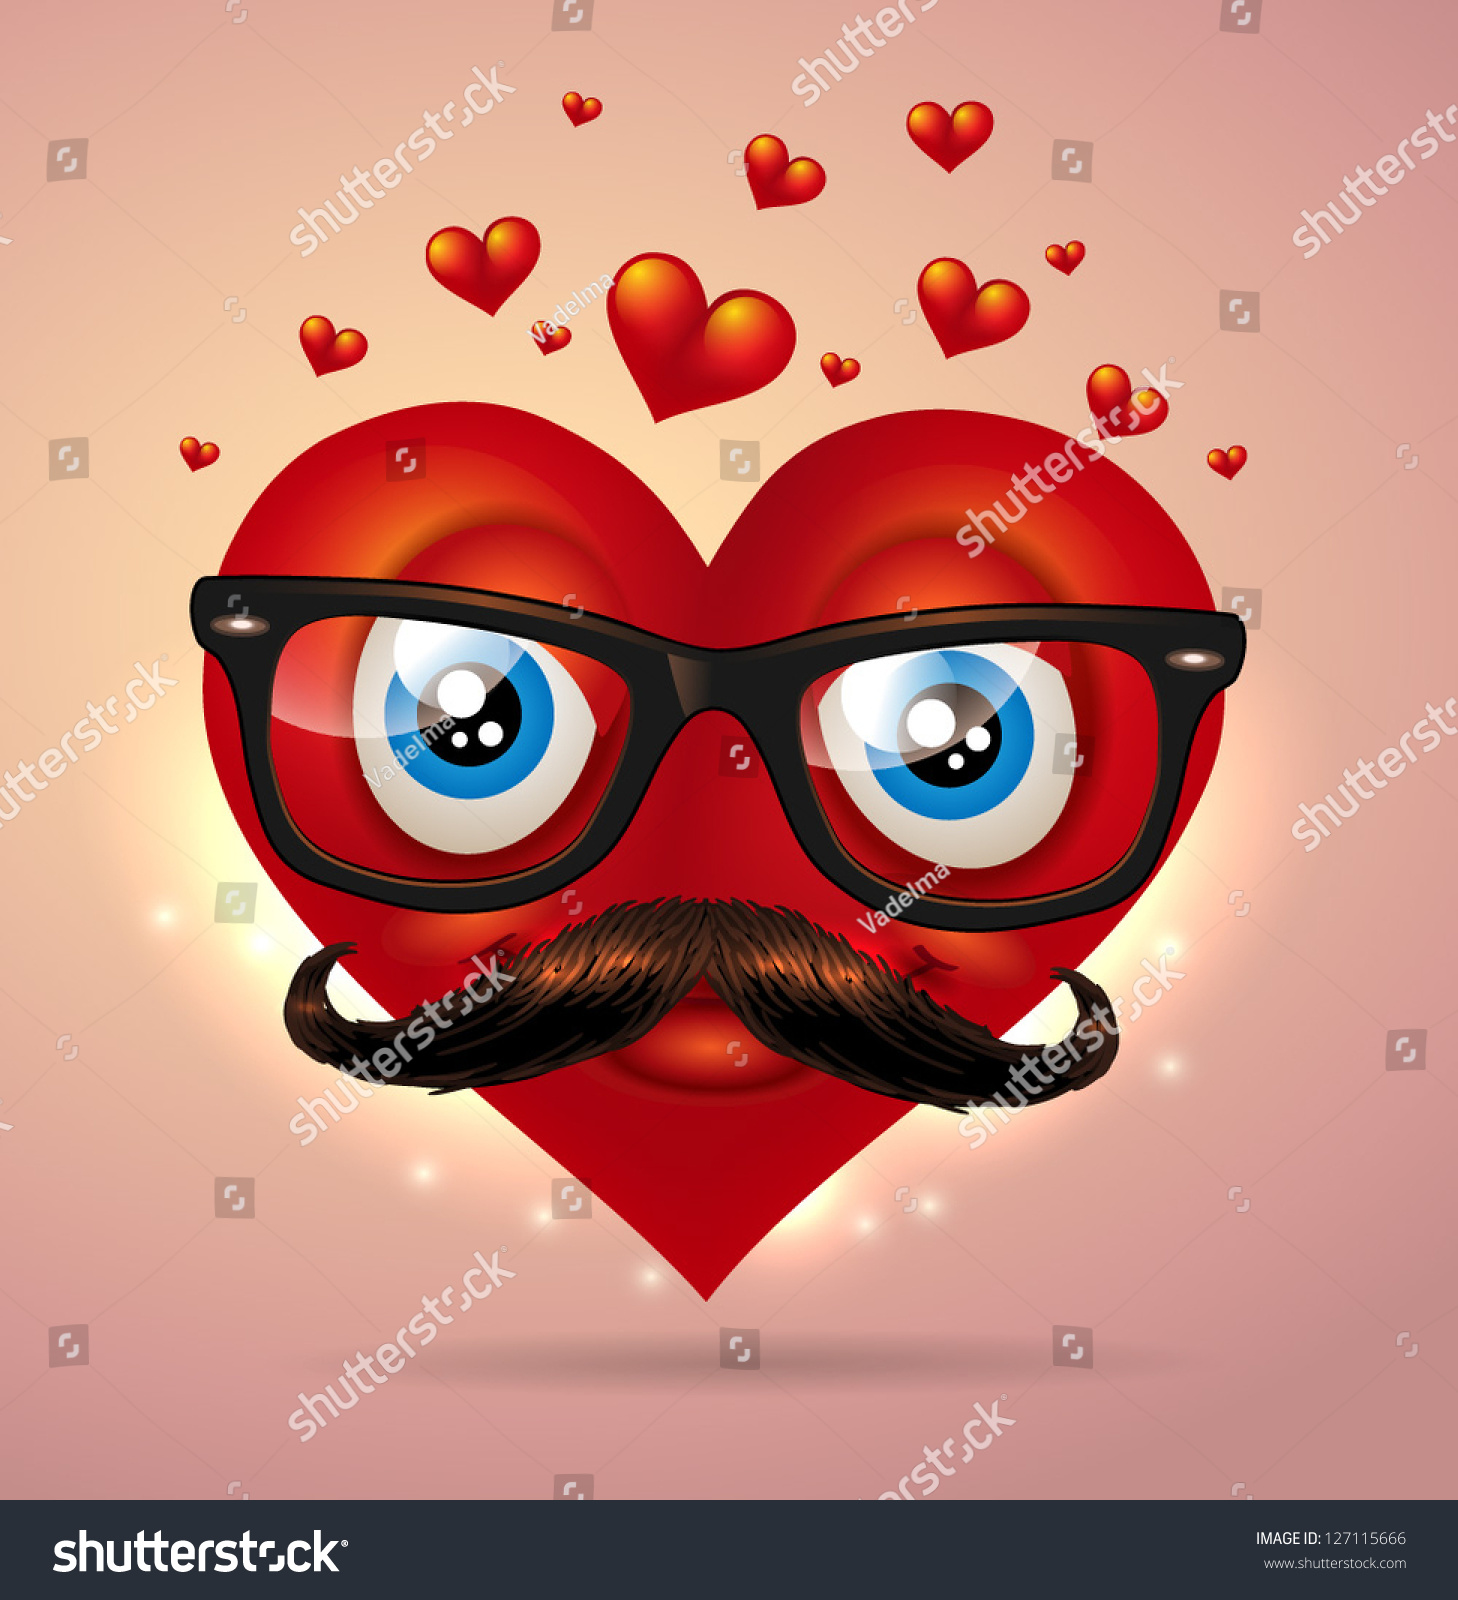 Valentine`s Day Heart Character   Vector Illustration.